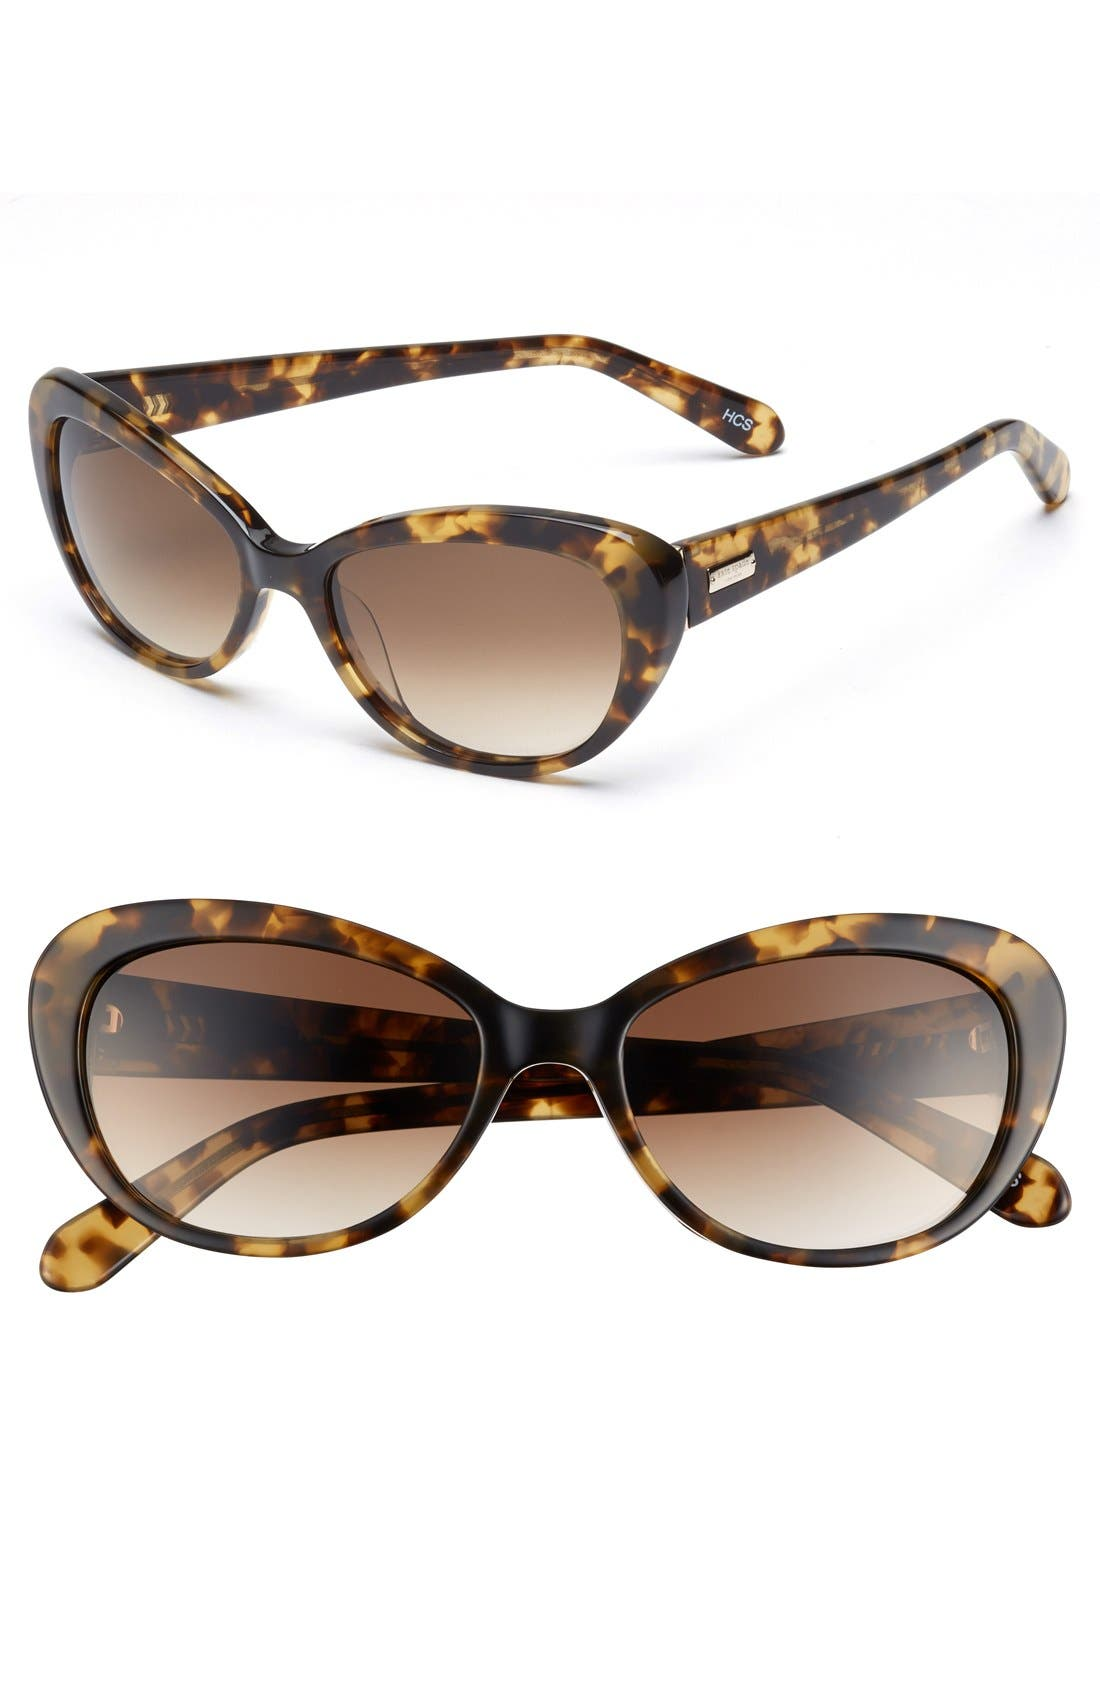 Alternate Image 1 Selected - kate spade new york 'inga' cat eye sunglasses